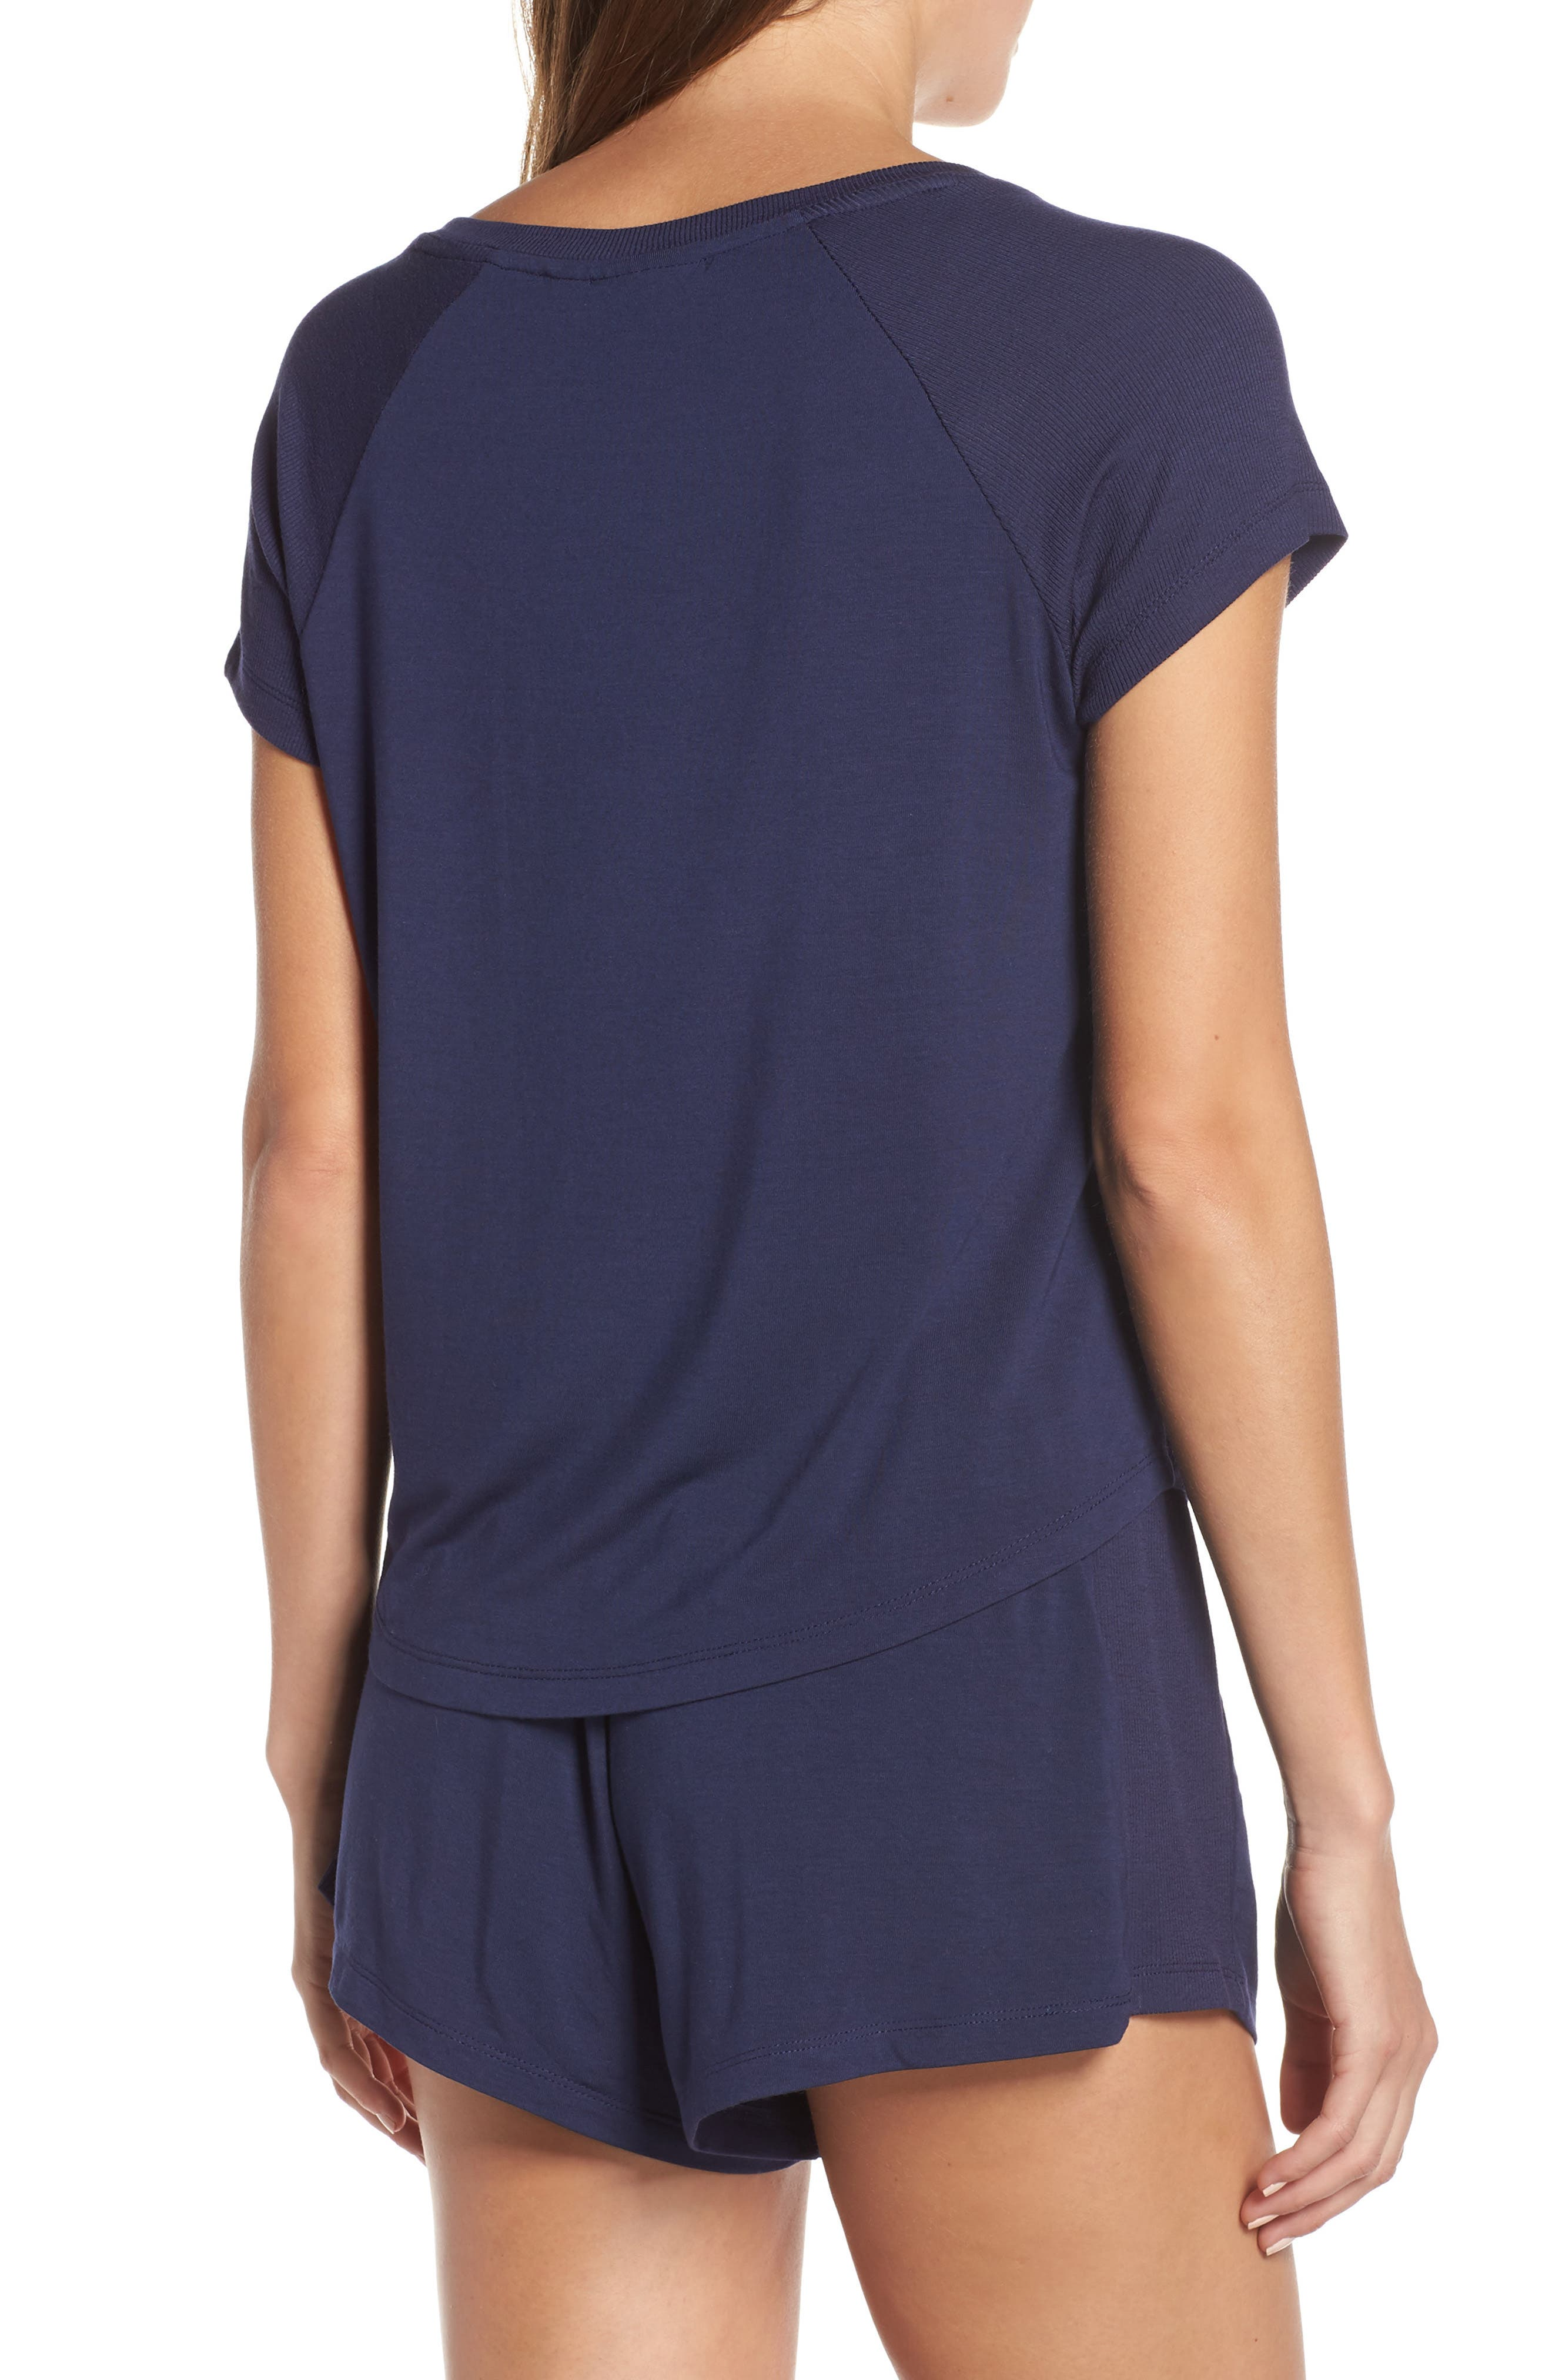 NORDSTROM LINGERIE, Breathe Rib Mix Short Pajamas, Alternate thumbnail 2, color, 410